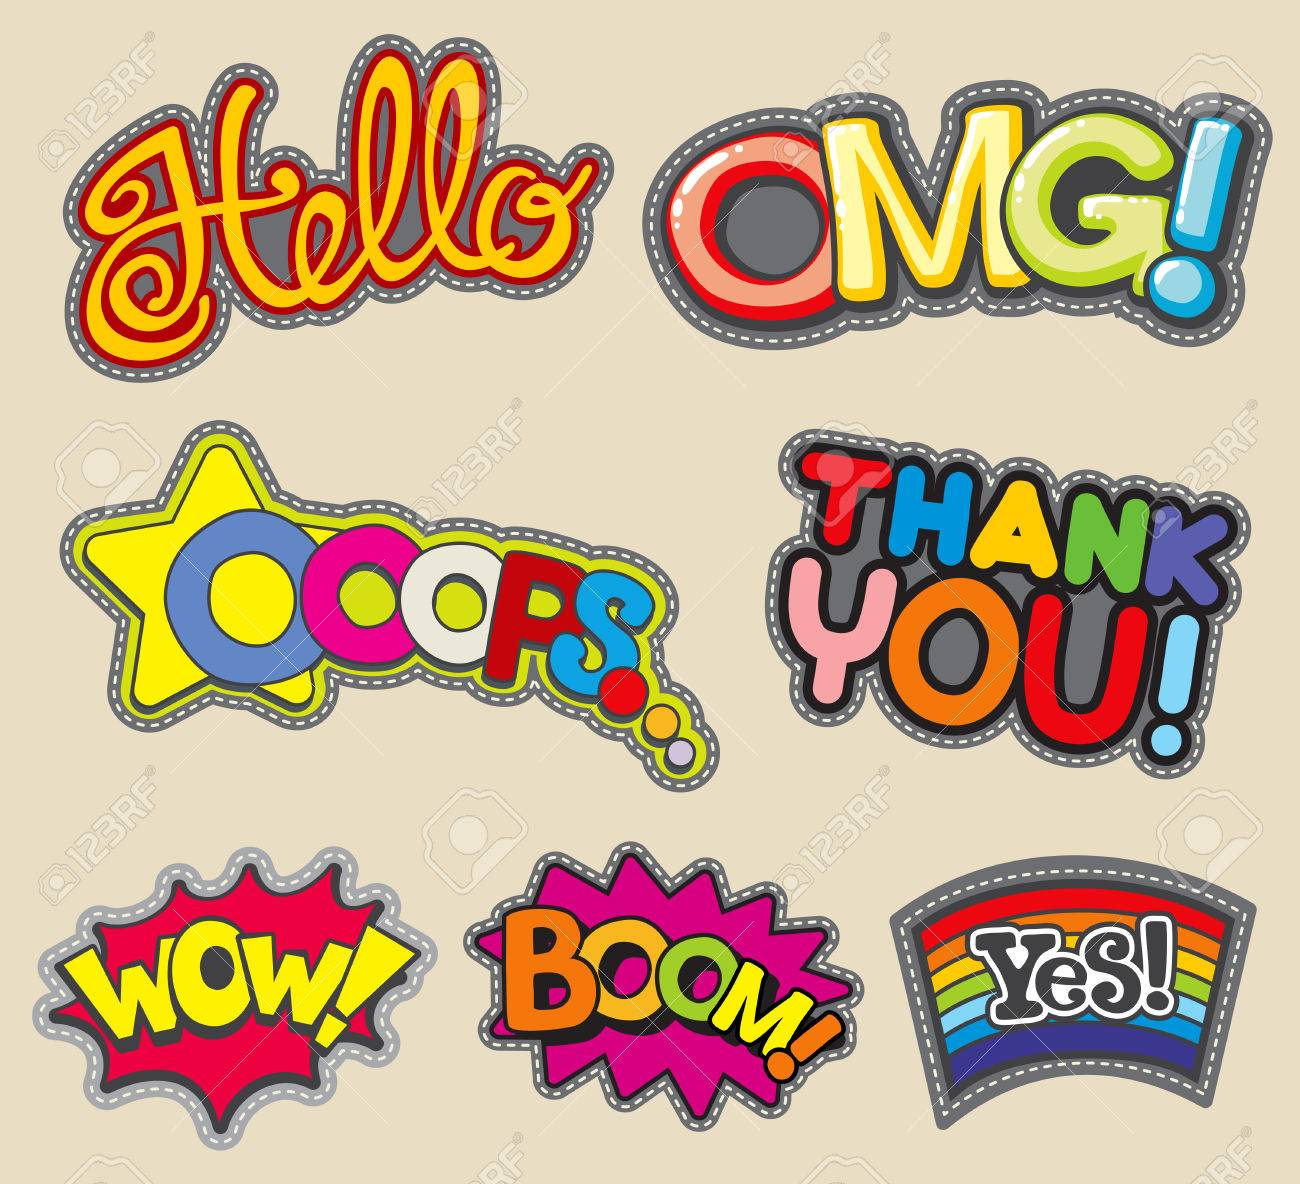 Vector vector internet words embroidery stitched badges fashion stickers thank you and wow boom and hello omg and yes illustration